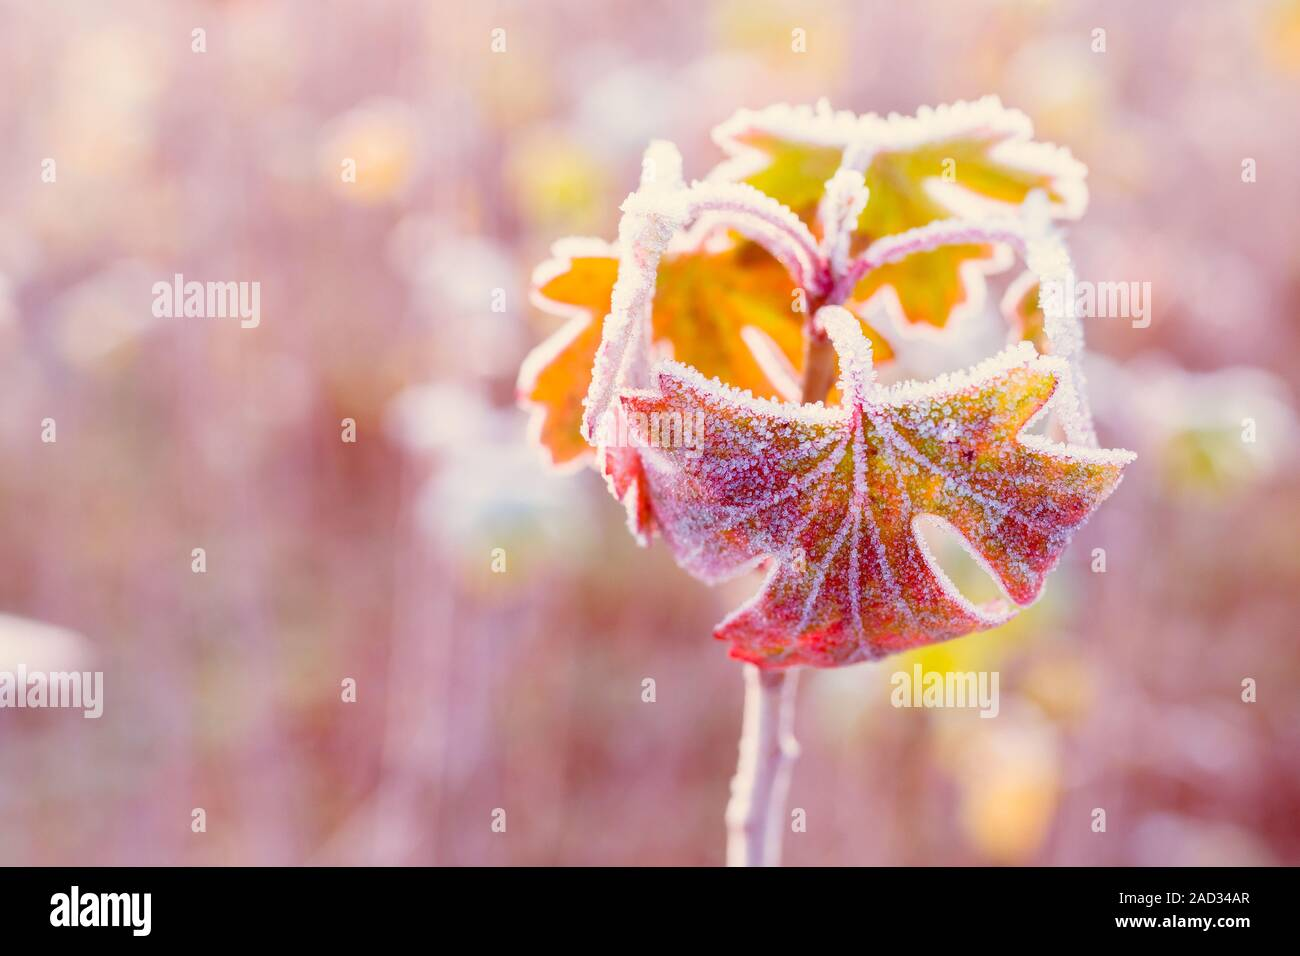 Frozen autumn leaves - shallow depth of field - abstract vibrant background Stock Photo